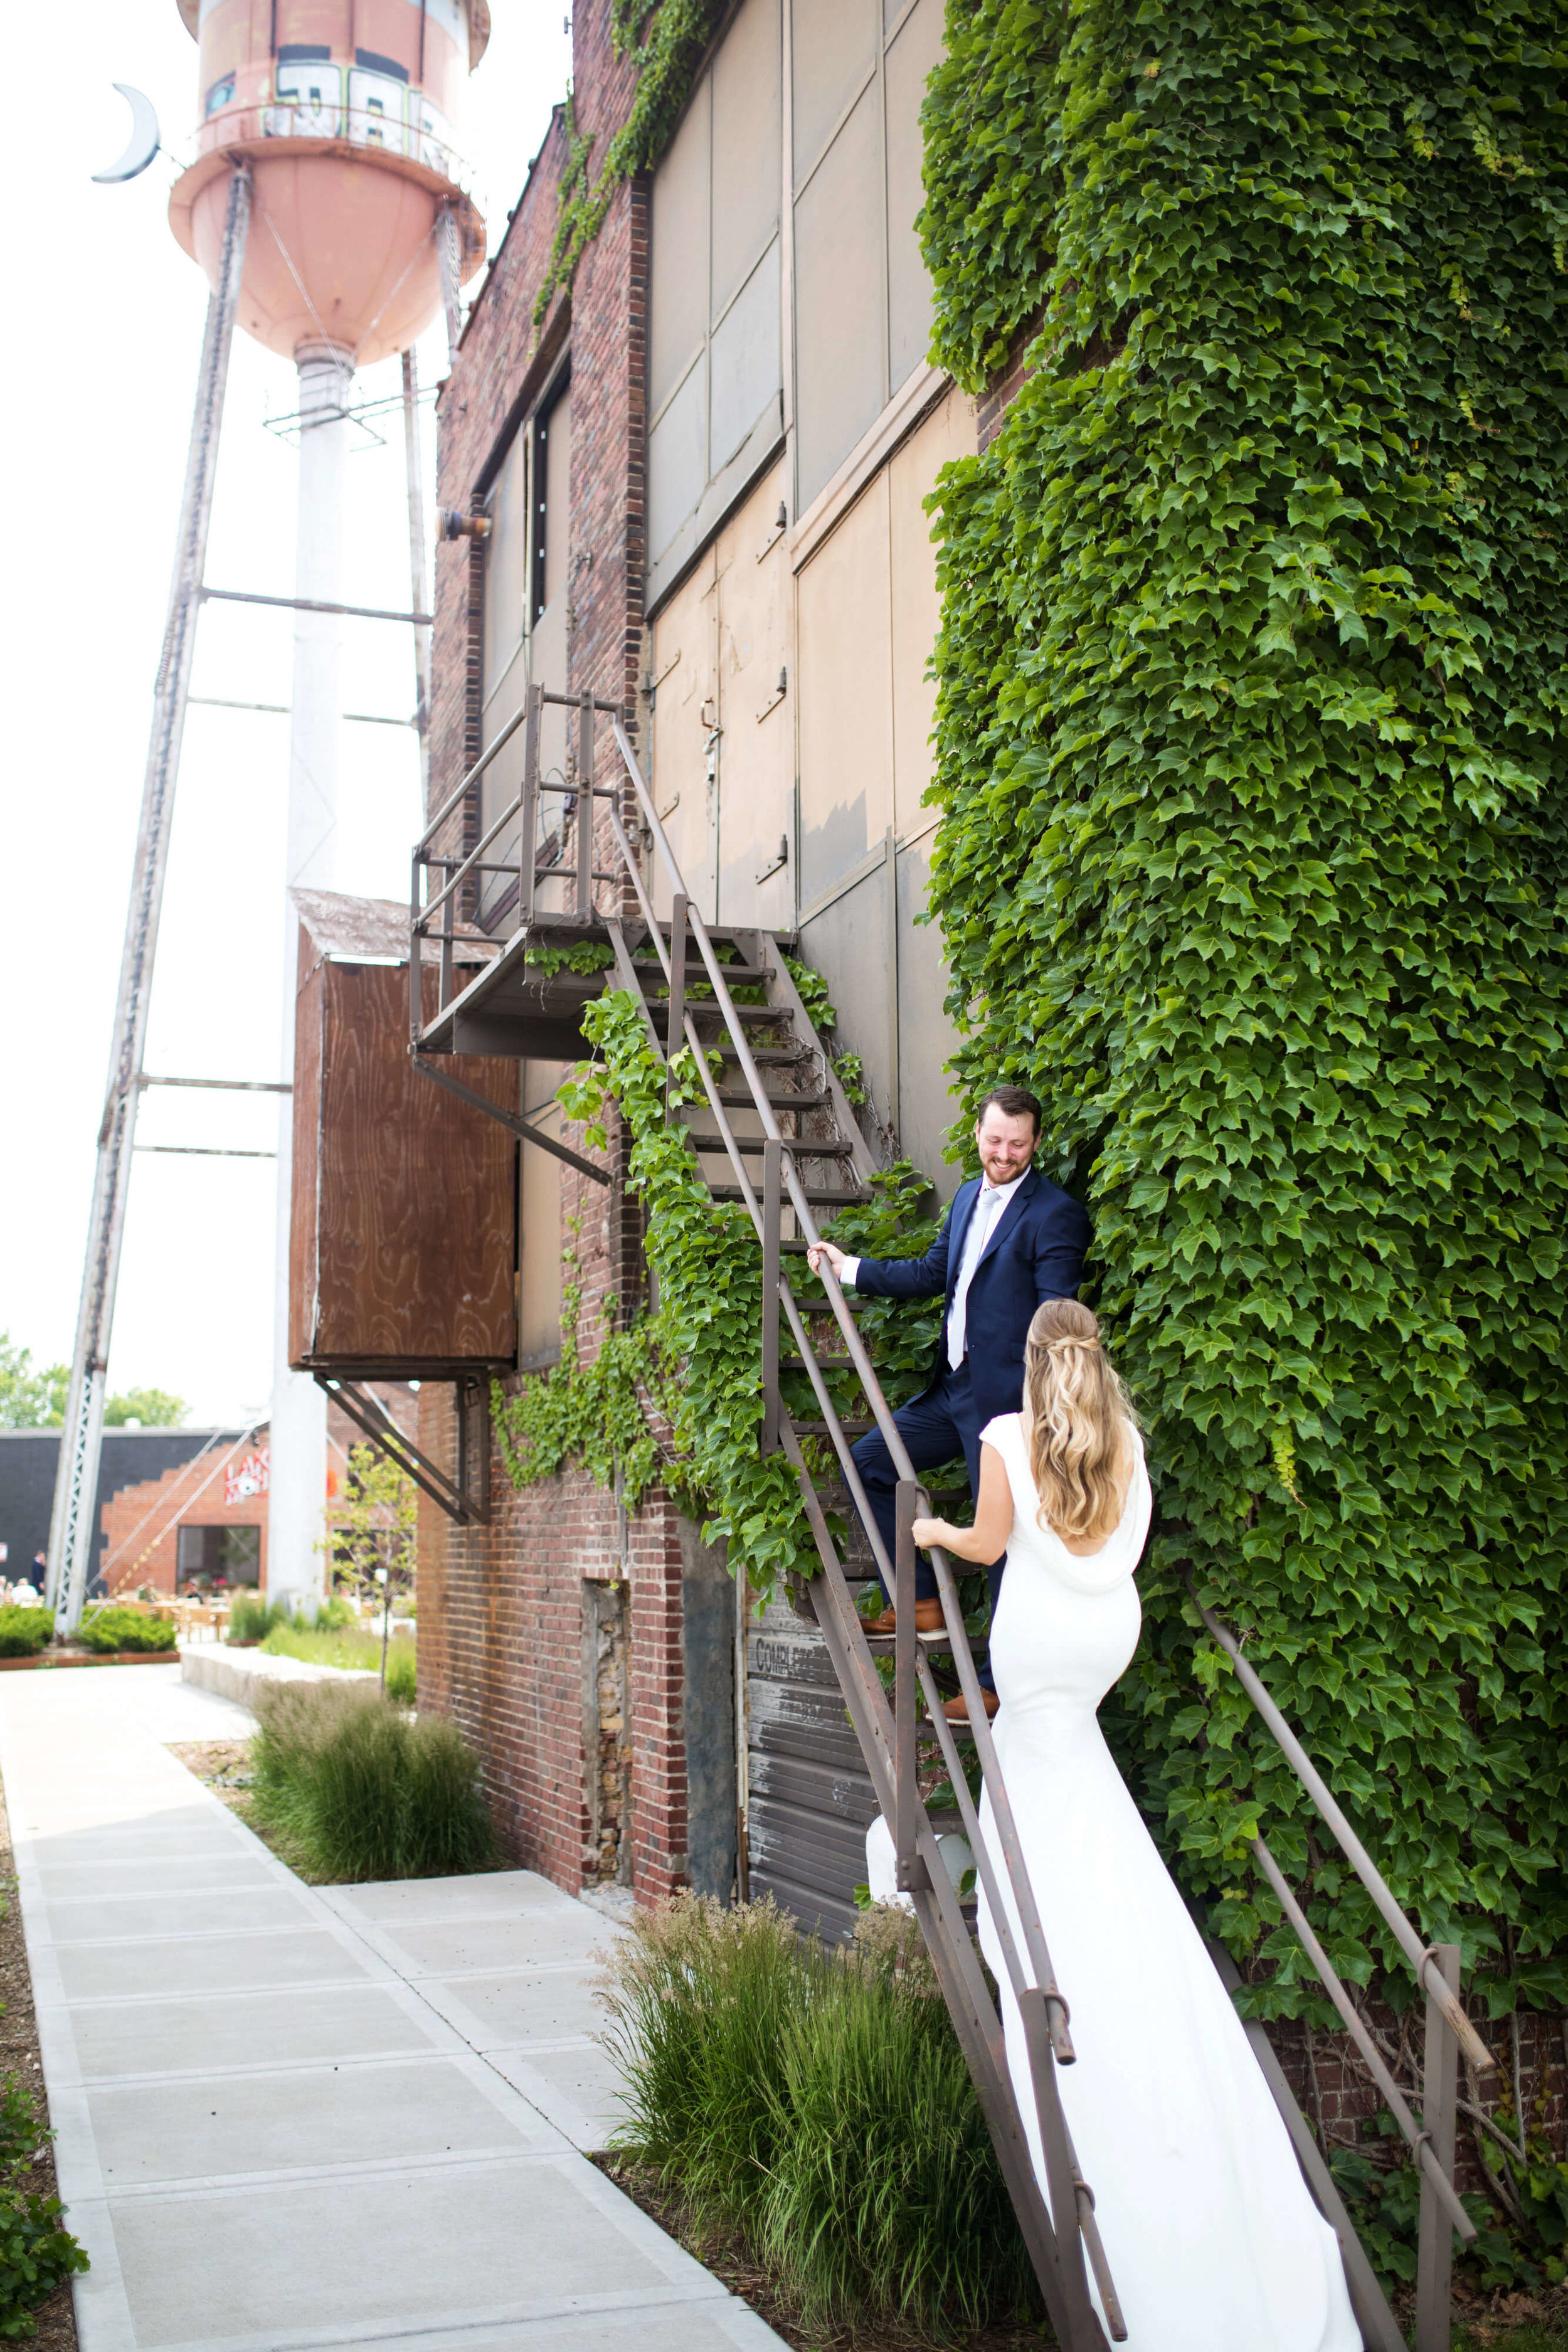 Studio KH wedding photographer | Sixpence Events and Planning, free wedding blog, free wedding help, free wedding advice | bride and groom walking up fire stairs with ivy at PAIKKA